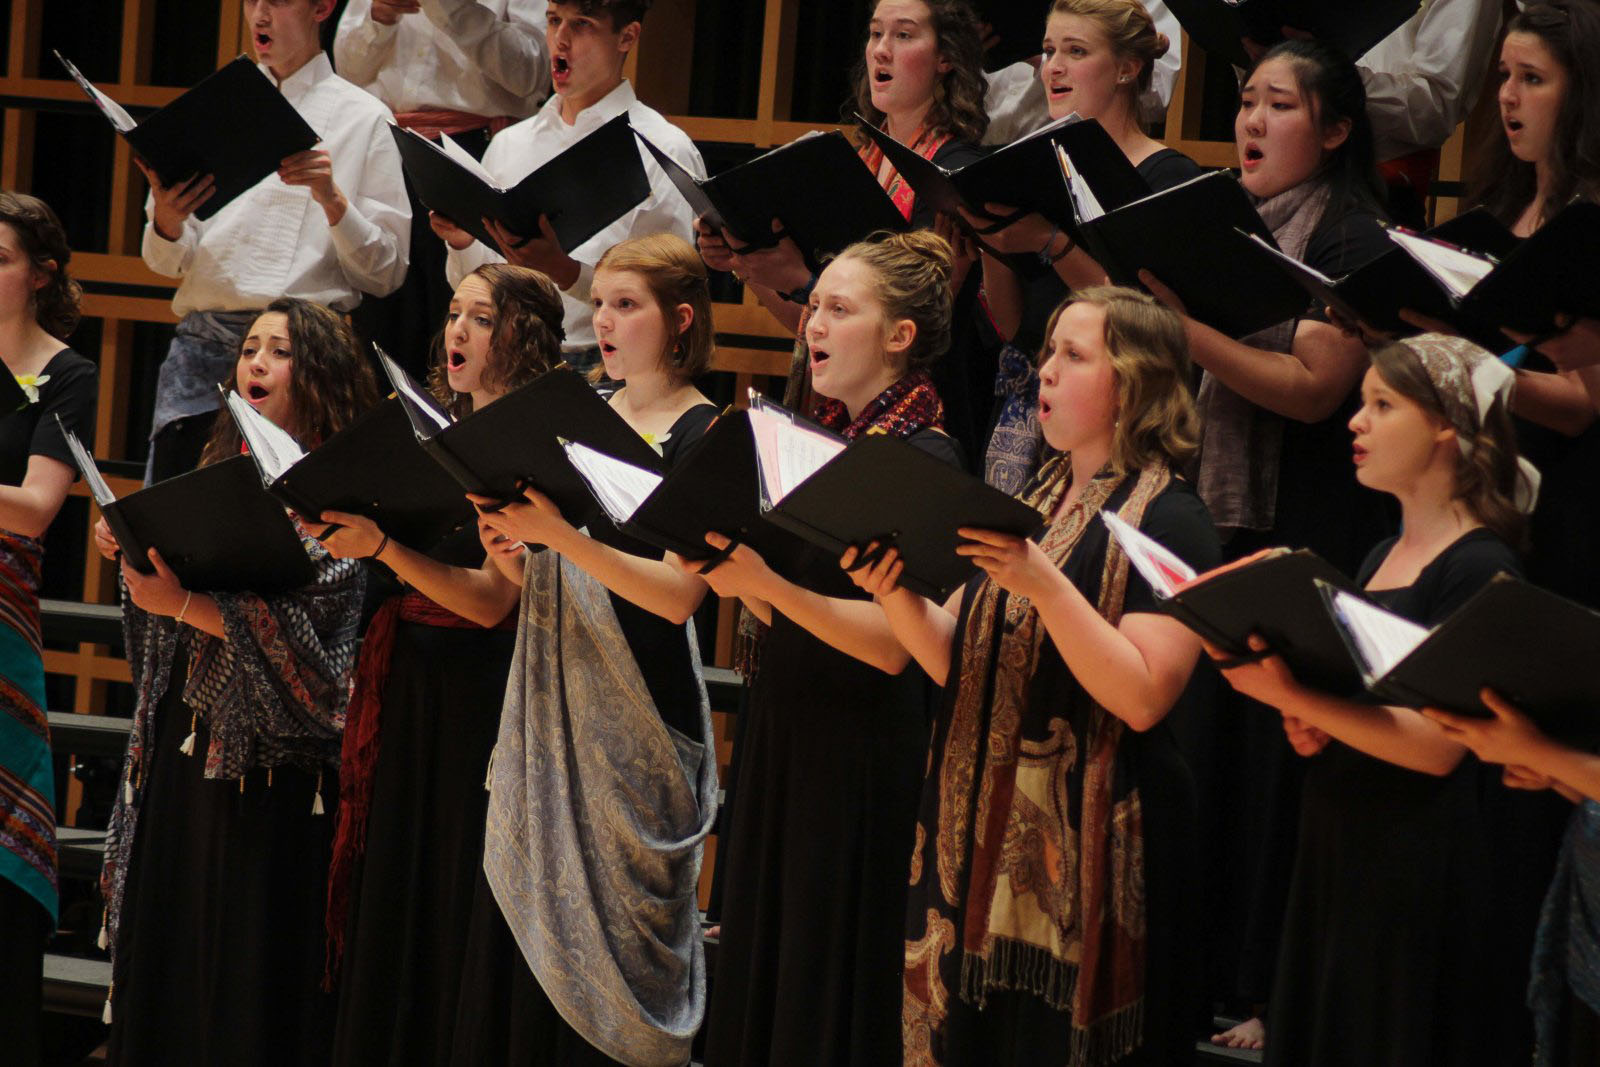 Voices of the Earth performs in a concert in Sauder Concert Hall